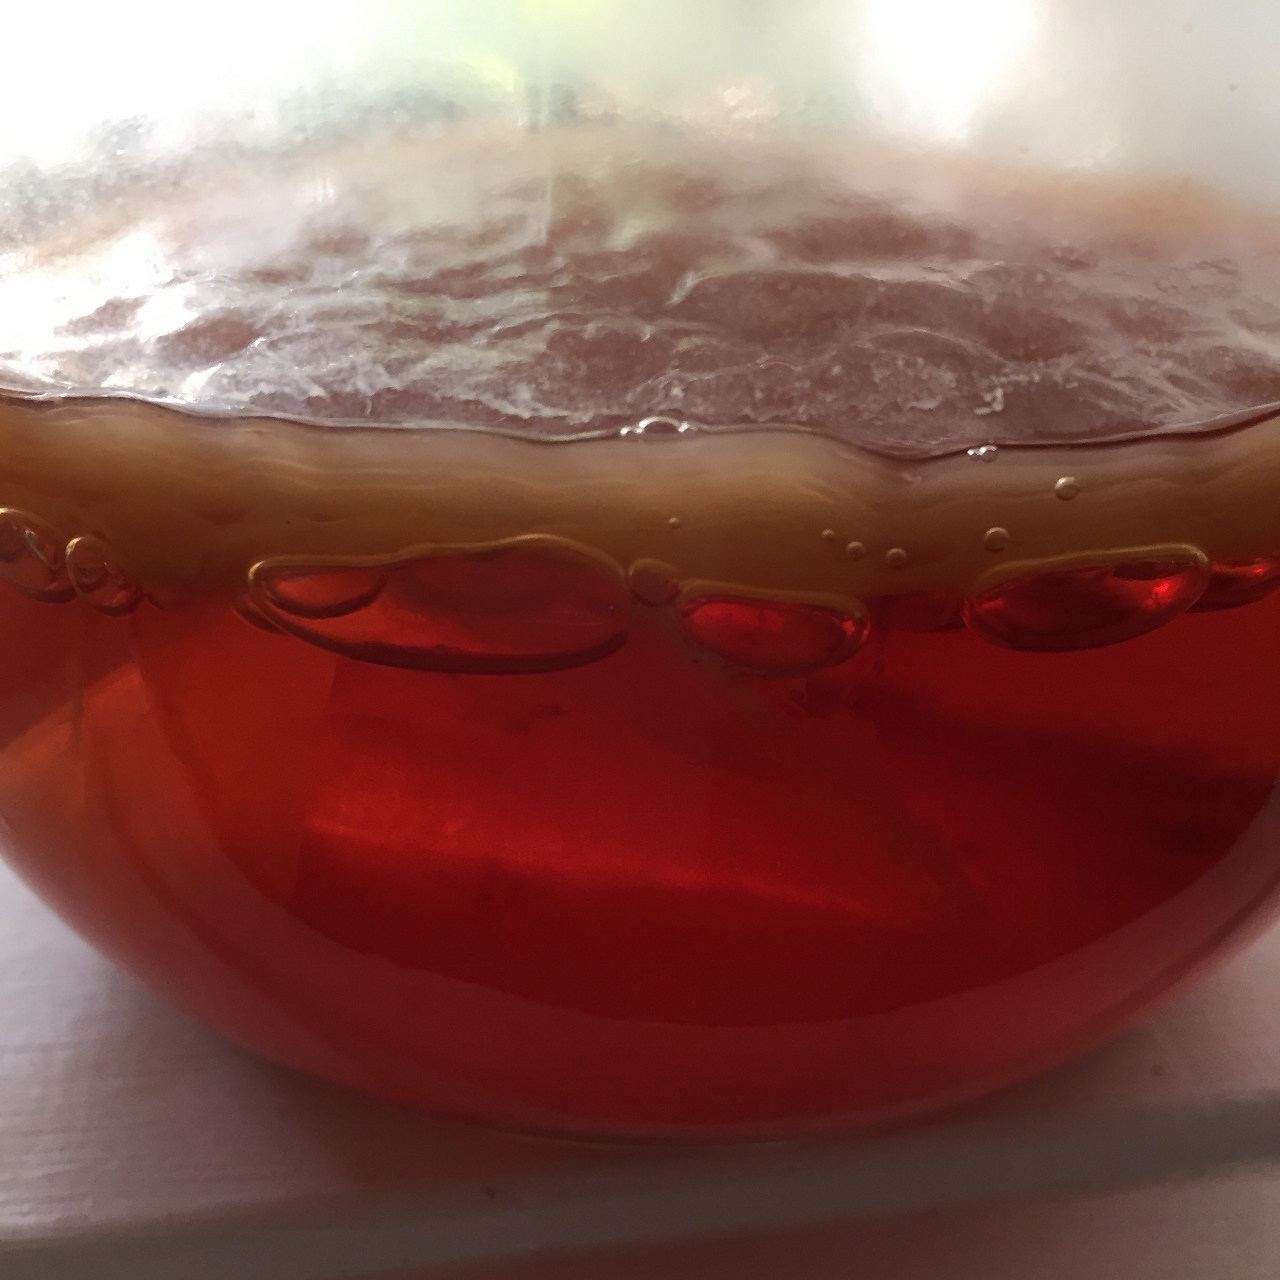 My pet scoby …